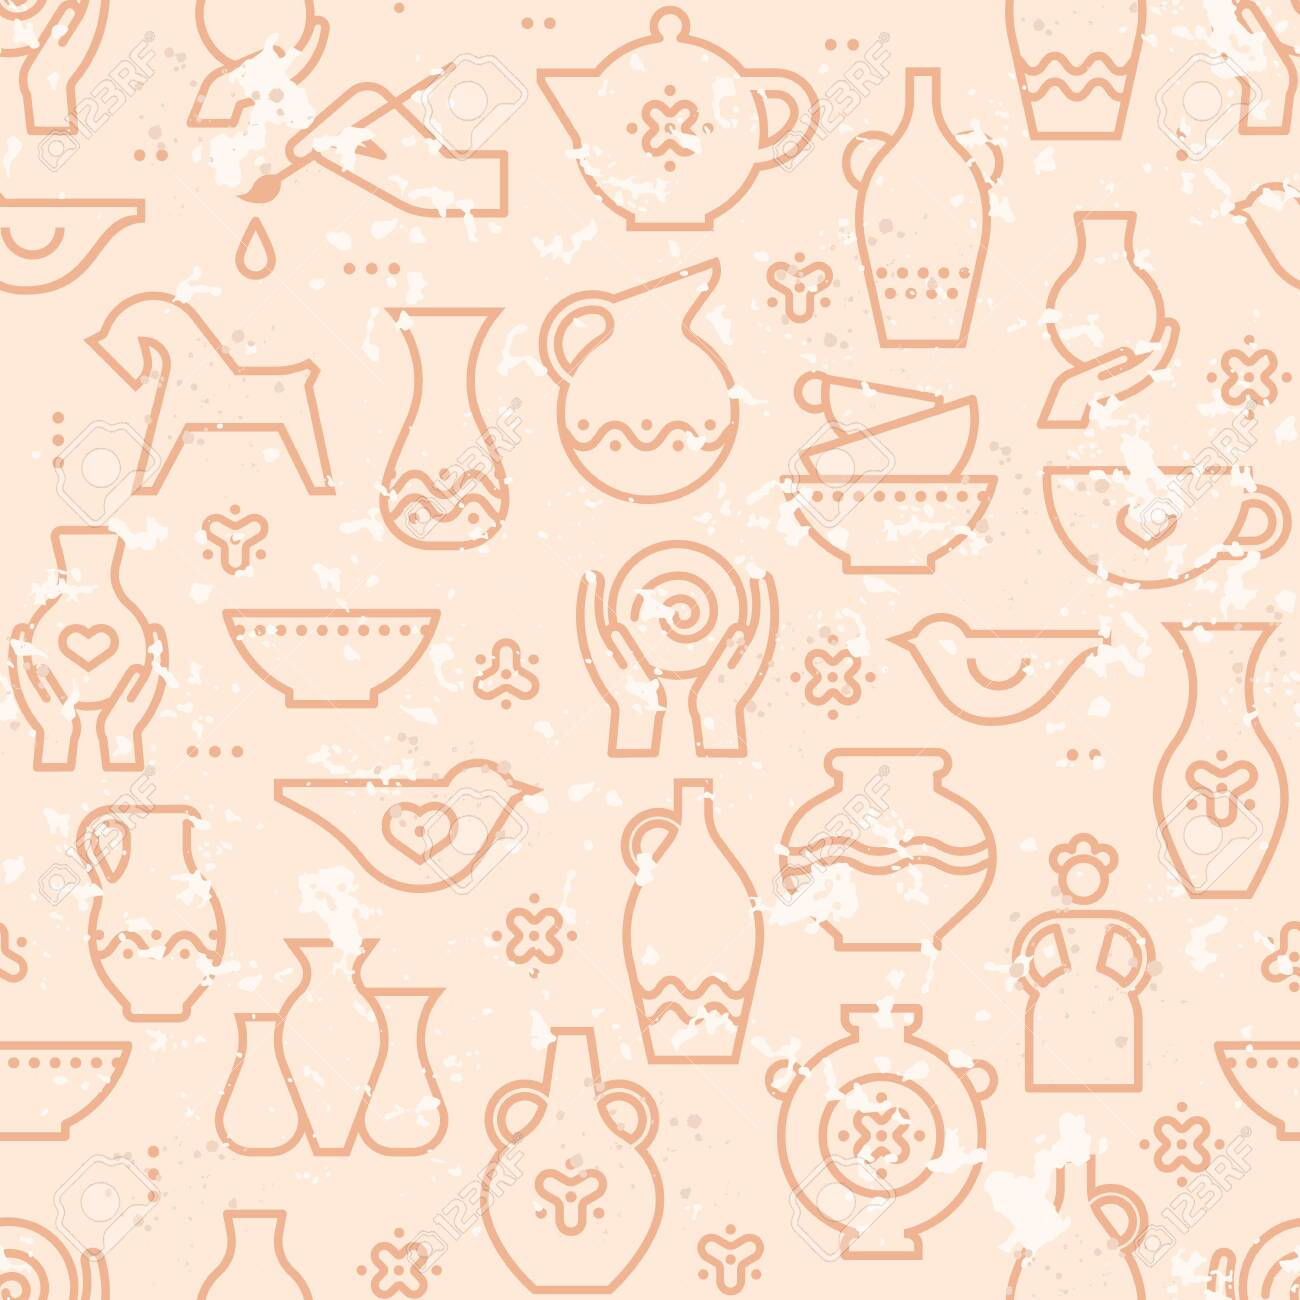 Vector Pottery Seamless Pattern Ceramics For Art Studio Design Royalty Free Cliparts Vectors And Stock Illustration Image 142263055